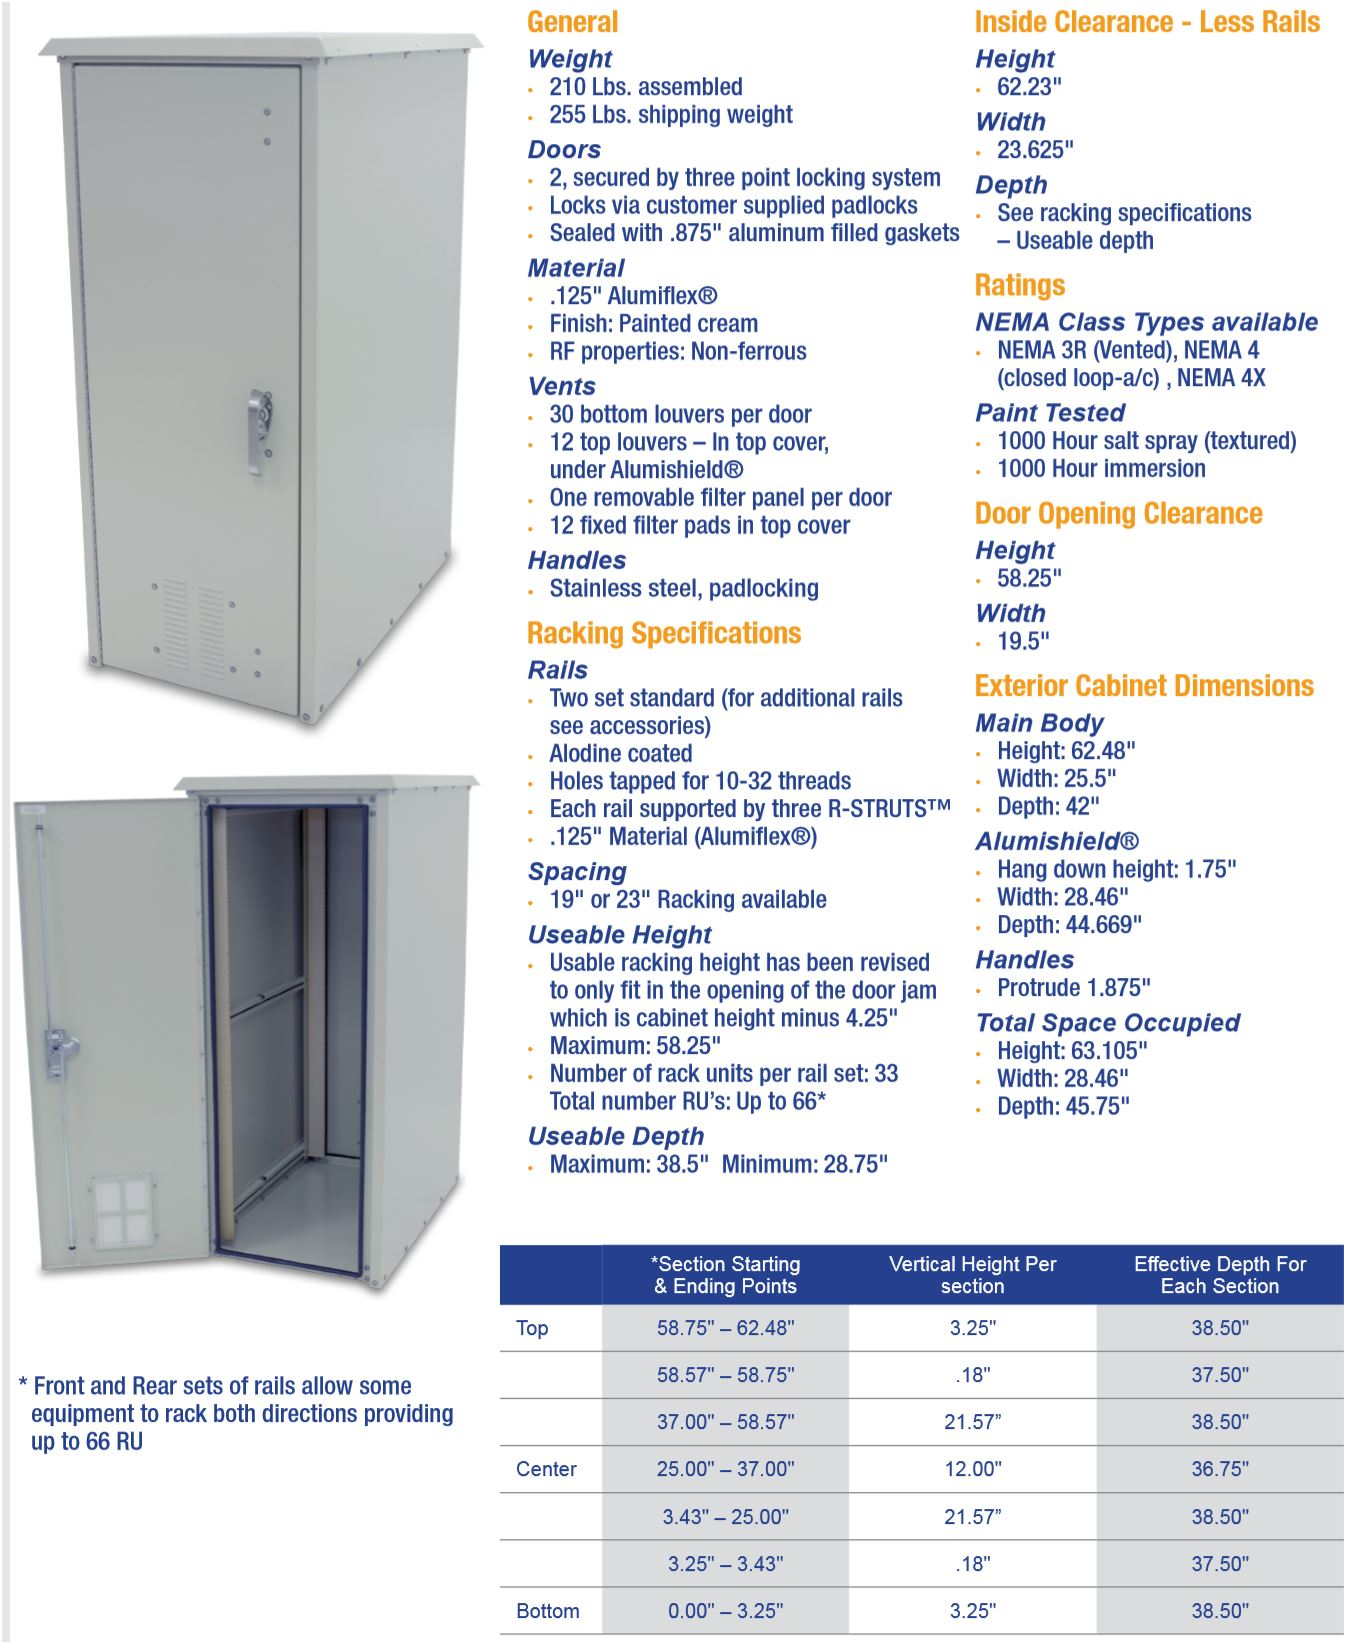 OkSolar.com Nema Outdoor Telecom Enclosures and Cabinets, Pad/Wall/Pole Mountable, wifi enclosure, wifi shelter, wifi cabinets, wimax enclosure, wimax shelter, wimax cabinets, electronic enclosures, ddb unlimited, ddb, 19 inch, 23 inch, racking, alarm cabinet, control boxes, alarm enclosure, cabinet, cabinet enclosure, cabinet housing, cabinet rack, eia 19, electrical cabinet, electrical enclosure, electrical housing, electronic cabinet, electronic enclosure, electronic rack, electric enclosure, enclosure, equipment rack, metal enclosure, nema 3, nema 3 cabinet, nema 3 enclosure, nema 3r, nema 3r cabinet, nema 3r enclosure, nema 4, nema 4x, nema 4 cabinet, nema 4 enclosure, nema 4x cabinet, nema 4x enclosure, weatherproof enclosure, weatherproof enclosures,  nema enclosure, nema enclsures,  nema, nema cabinet, nema cabinets, outdoor cabinet, outdoor cabinets, outdoor enclosure, outdoor enclosures, streetlight enclosure, aluminum, shelter, shelters, nema, enclosure, enclosures, elctrical enclosure, traffic control enclosure, traffic enclosure, 1 ru rack, 2 ru rack, 3 ru rack, 4 ru rack, 5 ru rack, 6 ru rack, 7 ru rack, 8 ru rack, 9 ru rack, 10 ru rack.